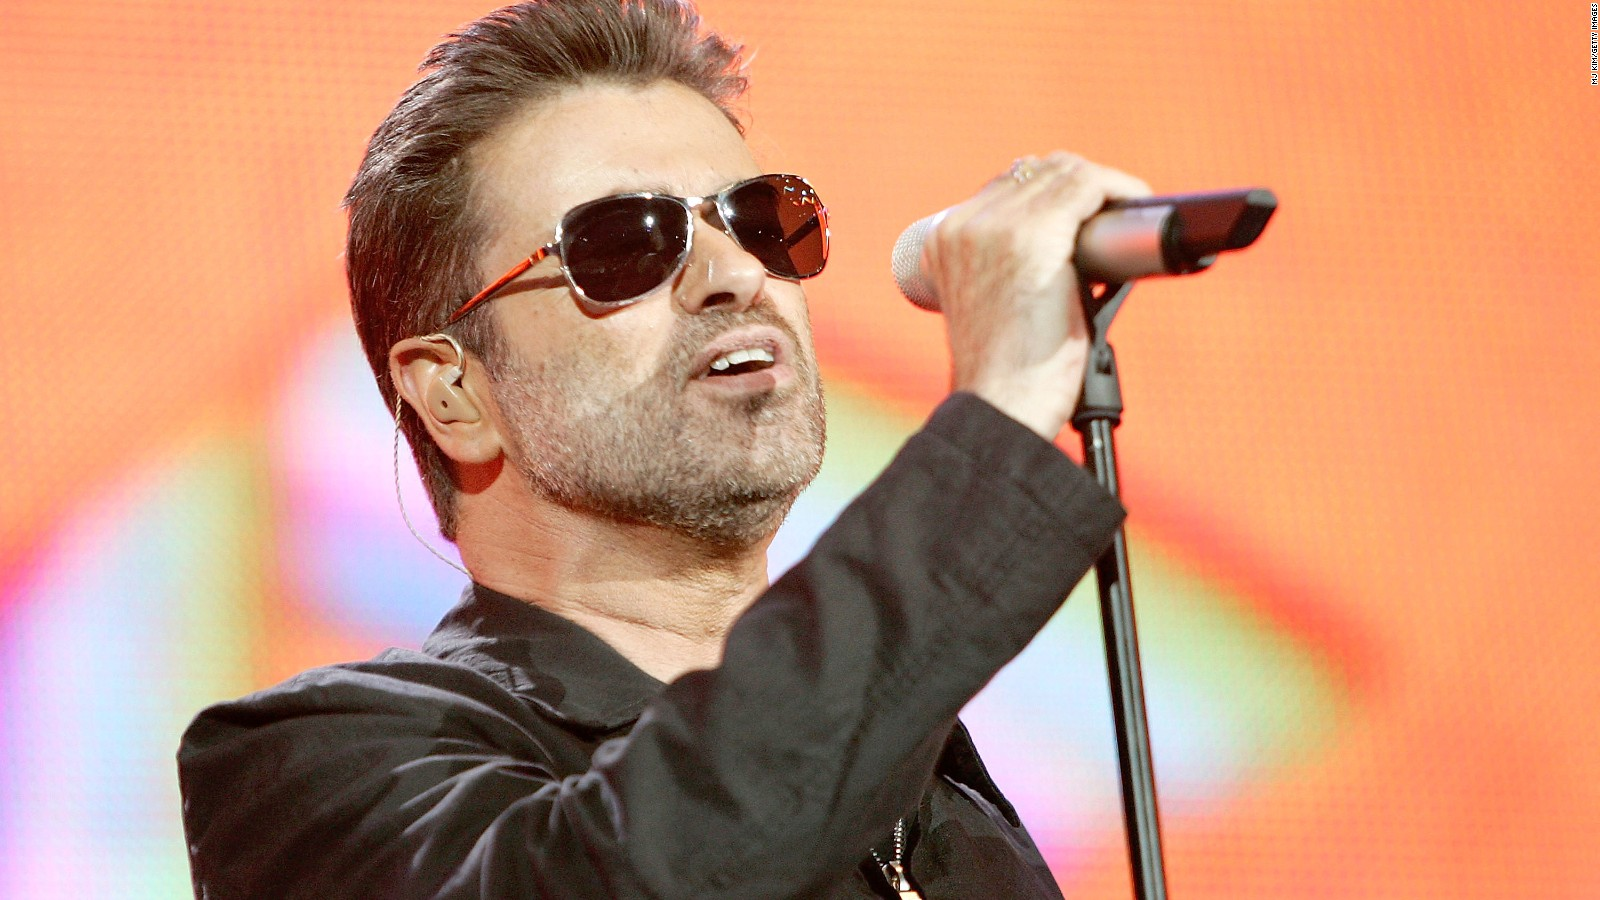 George michael pop superstar has died at 53 new york times - George Michael Rare Authenticity In The Manufactured Music Industry Cnn Com